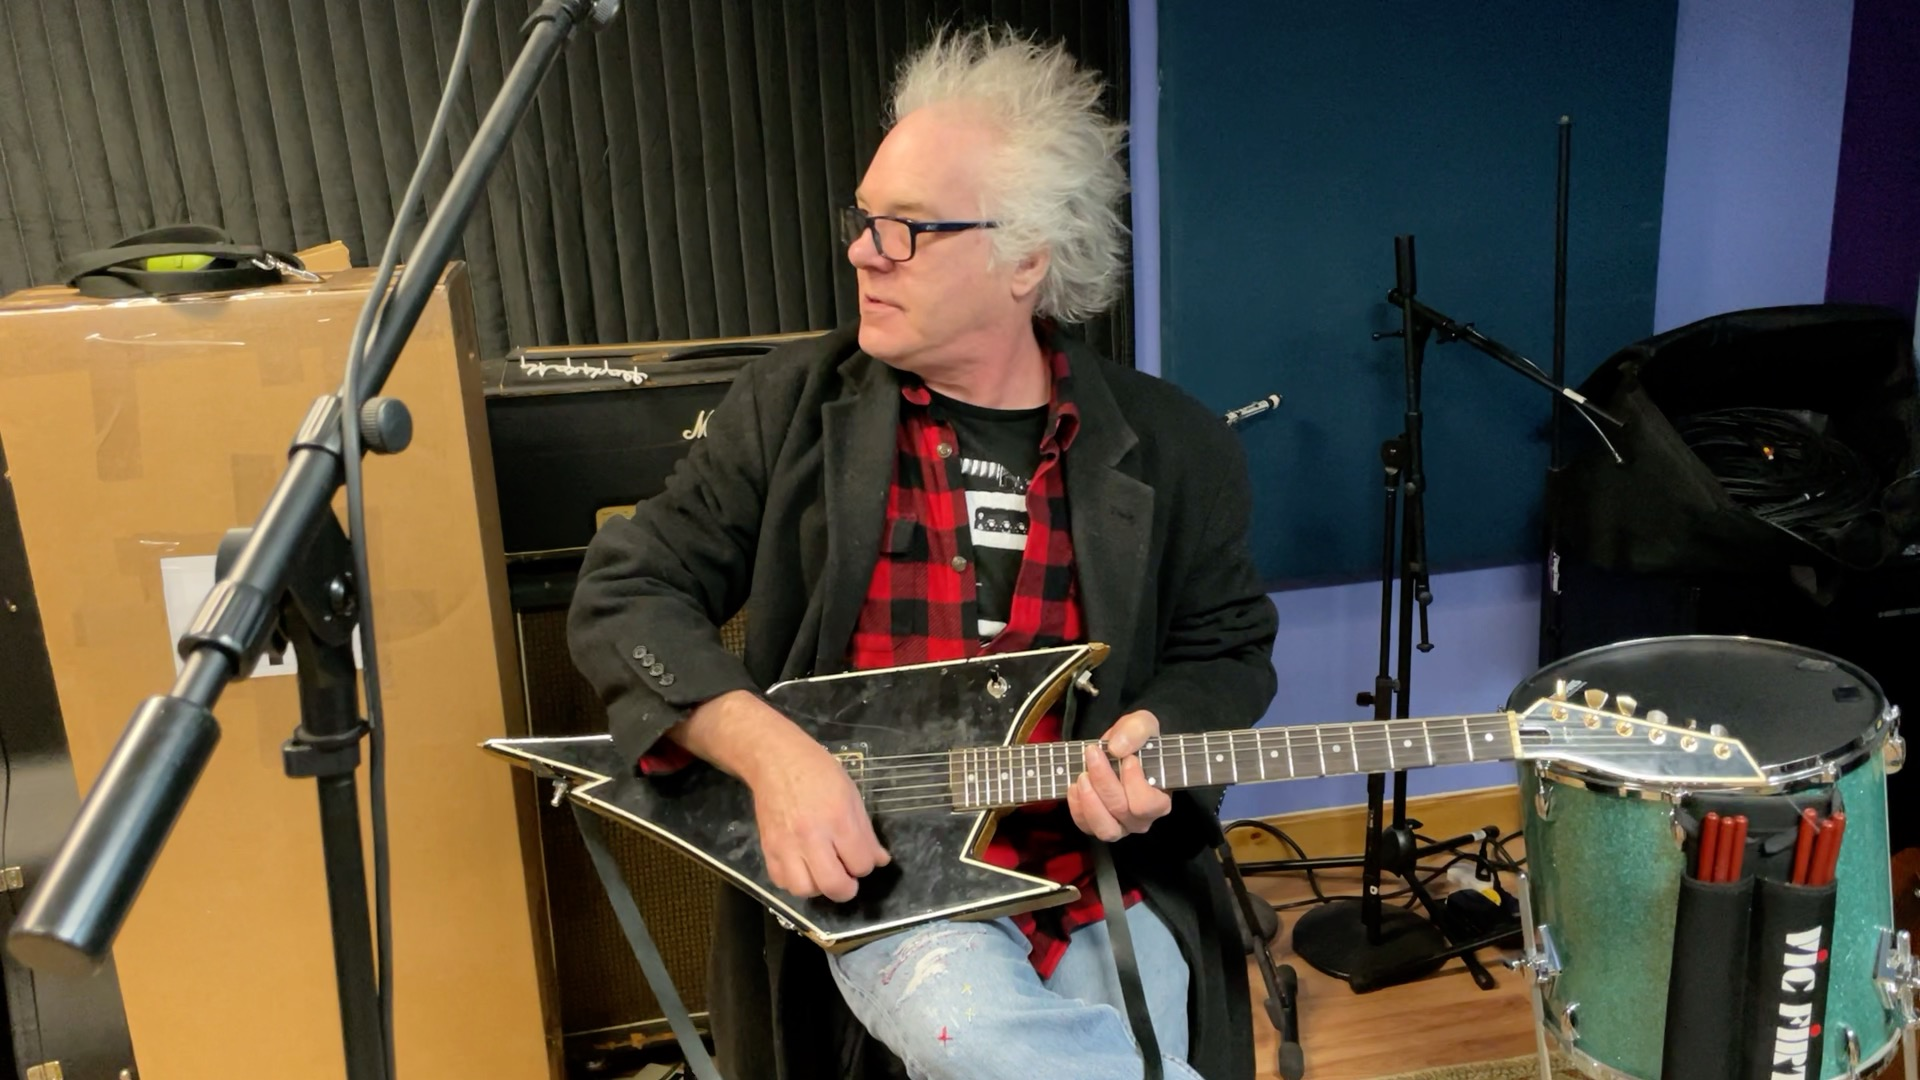 Brynn Arens of Flipp Brings in his Legendary Coyote Guitar for a Setup